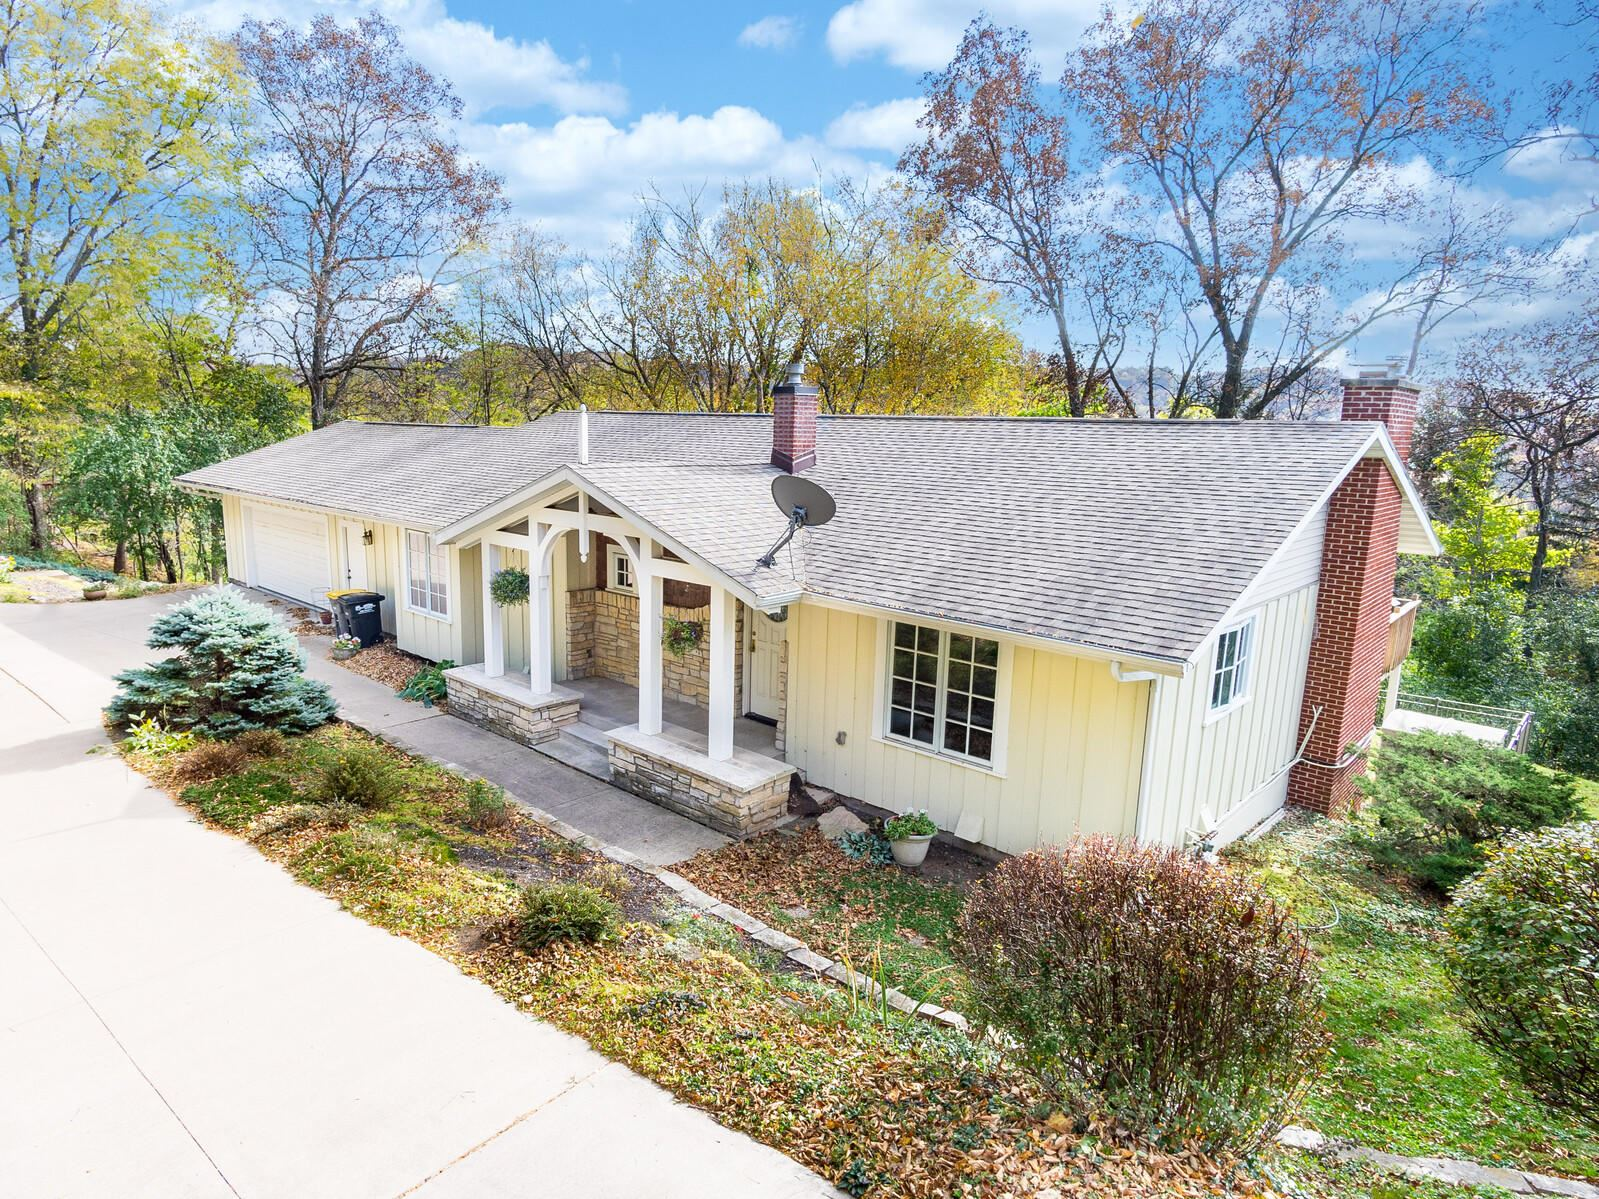 N1955 Hickory LN, Shelby, WI 54601 - MLS#: 1715887